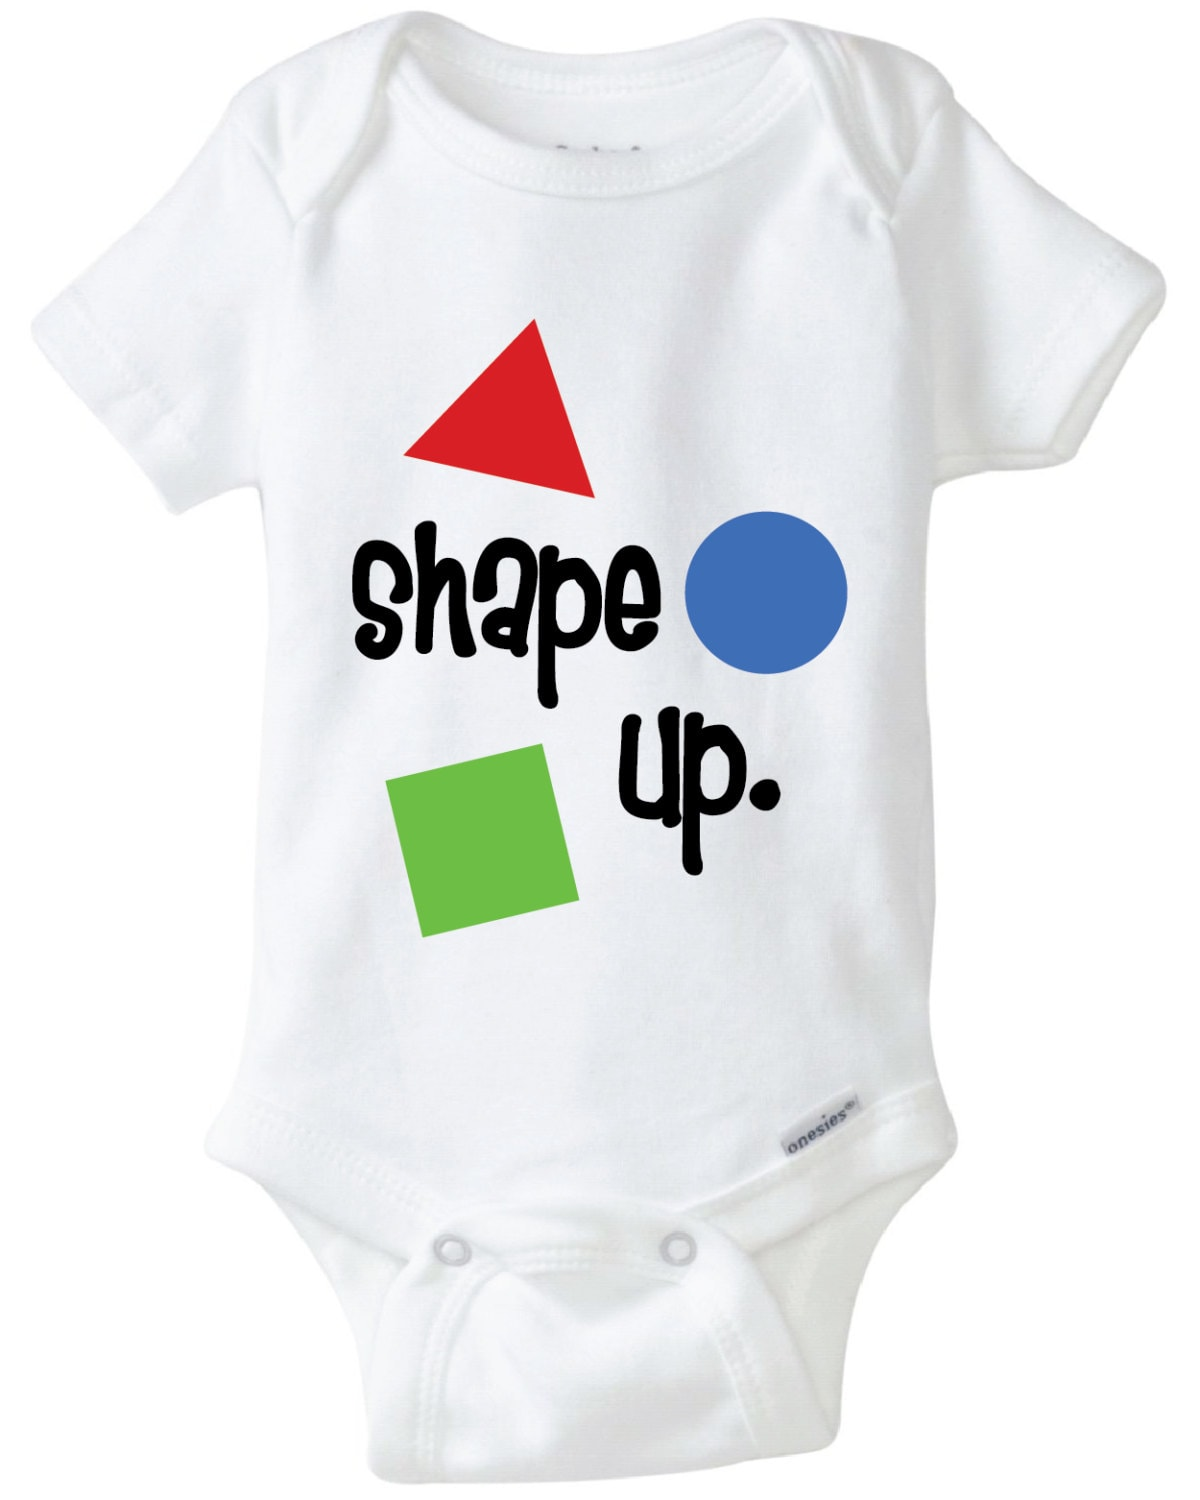 Shape Up Baby Onesie Design Svg Dxf Eps Vector Files For